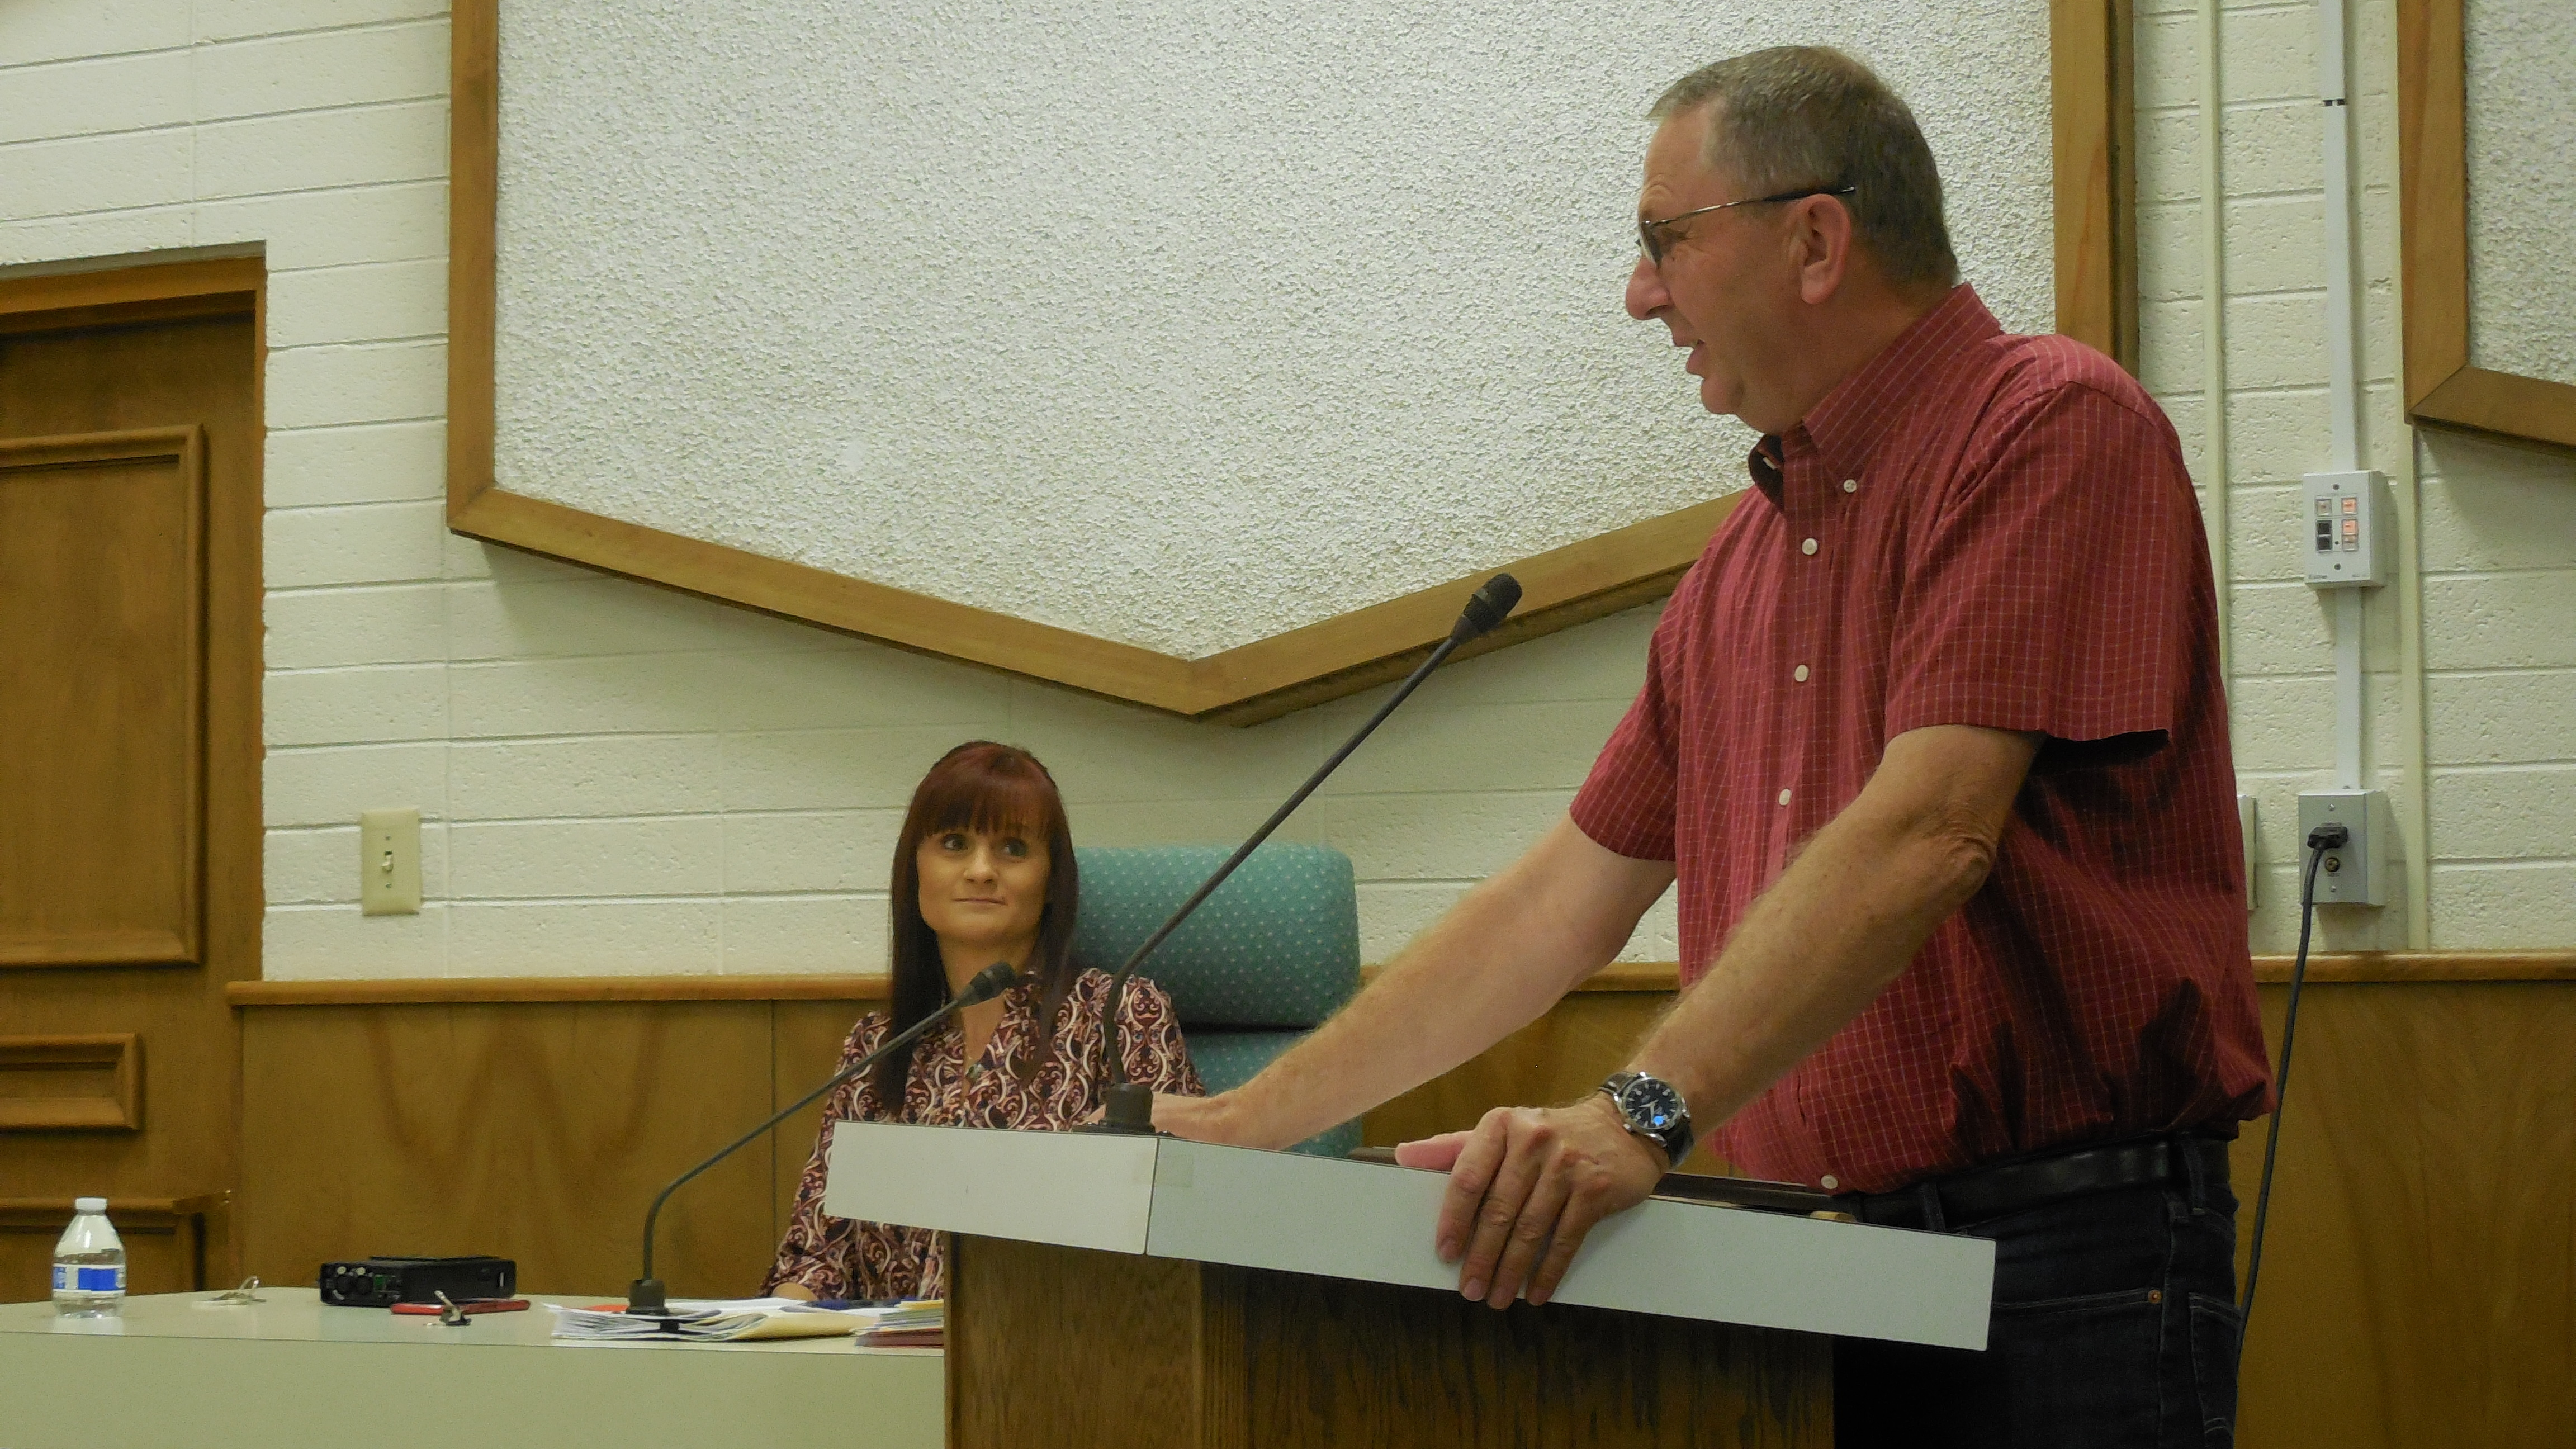 Former county administrator Dean Cox says farewell to the County Commission Tuesday. Cox retired after 30 years of service to the county, St. George, Utah, Aug. 16, 2016 | Photo by Julie Applegate, St. George News